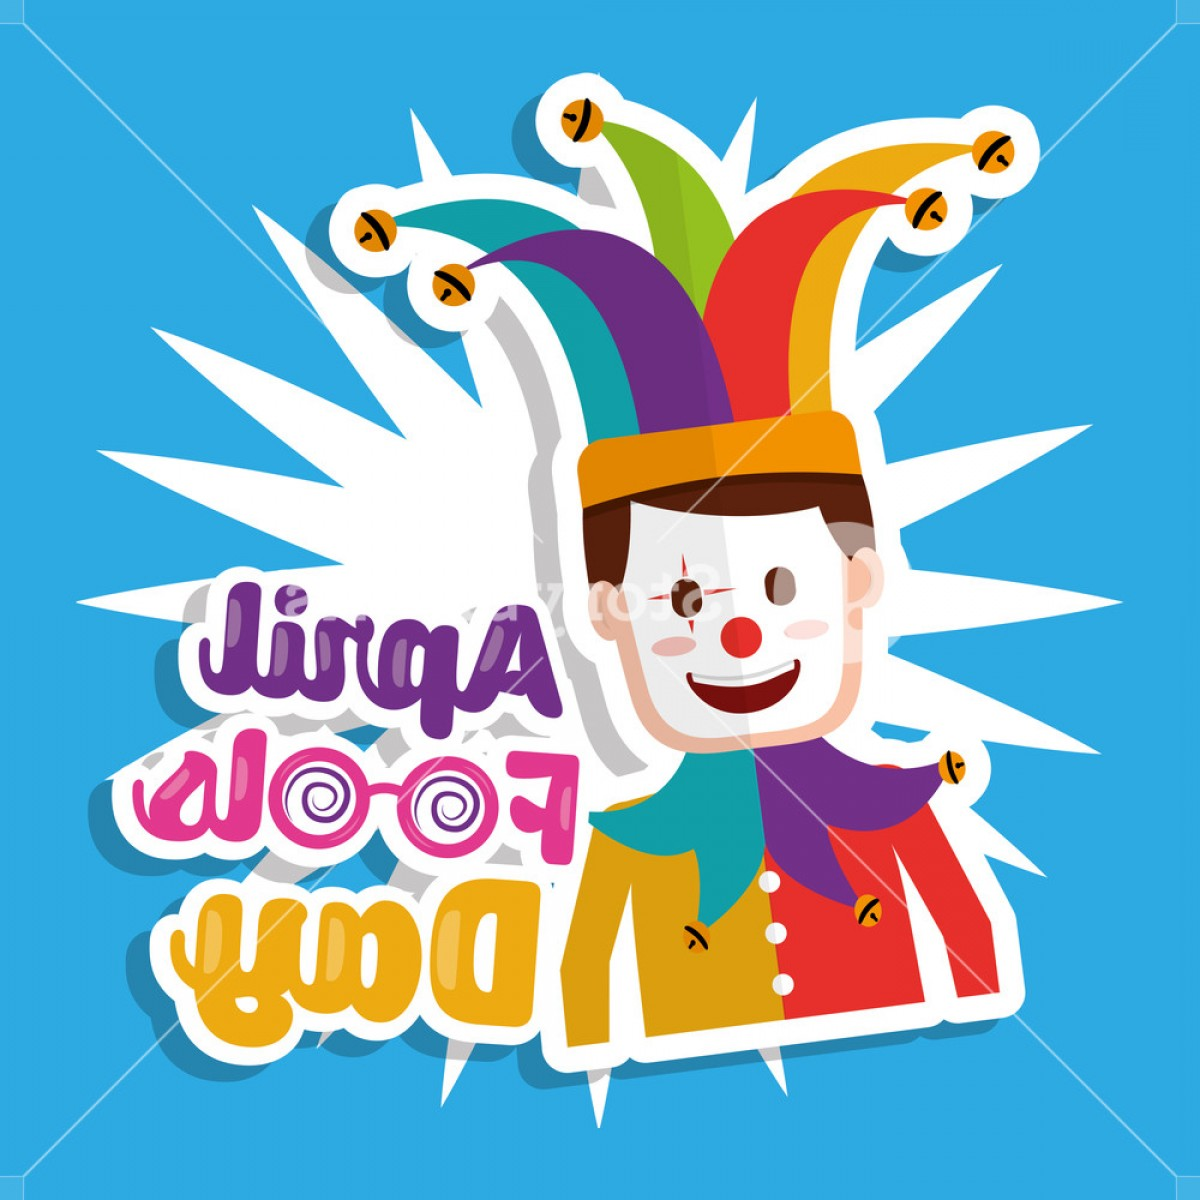 Joker Vector Graphics: Joker With Mask Funny April Fools Day Vector Illustration Hxgxgqkemjegppq